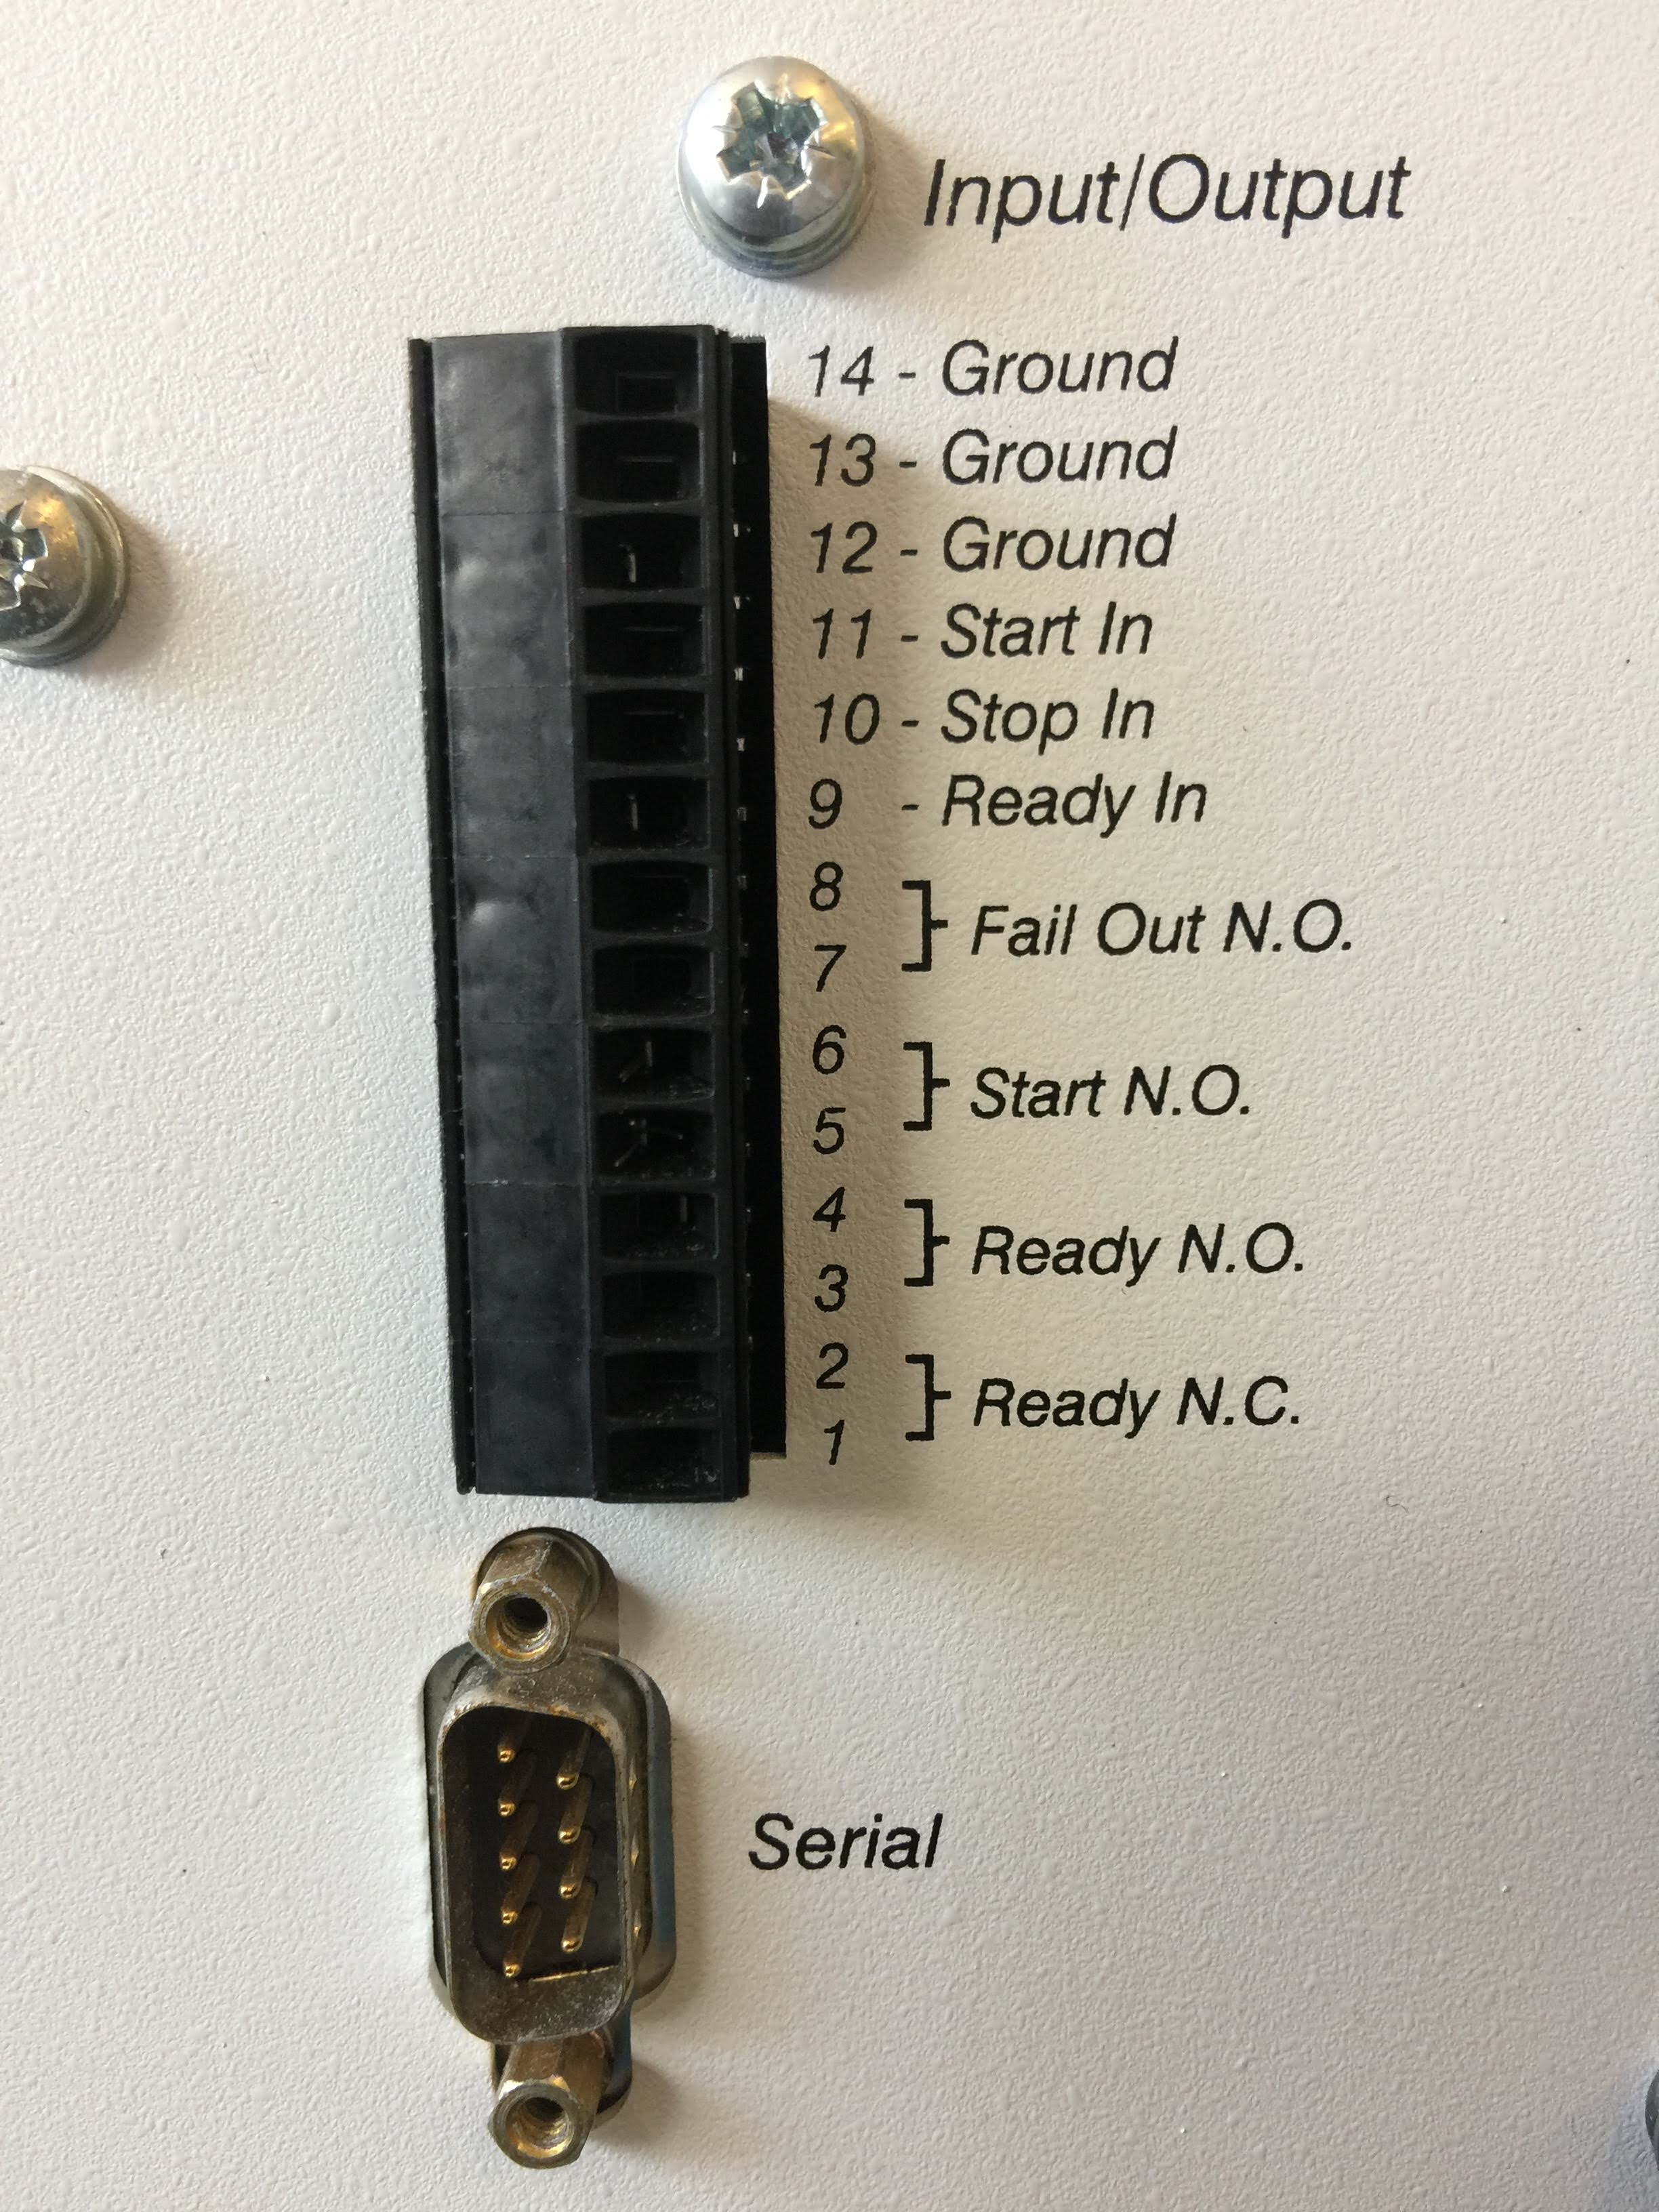 Input/Output List, Serial Port